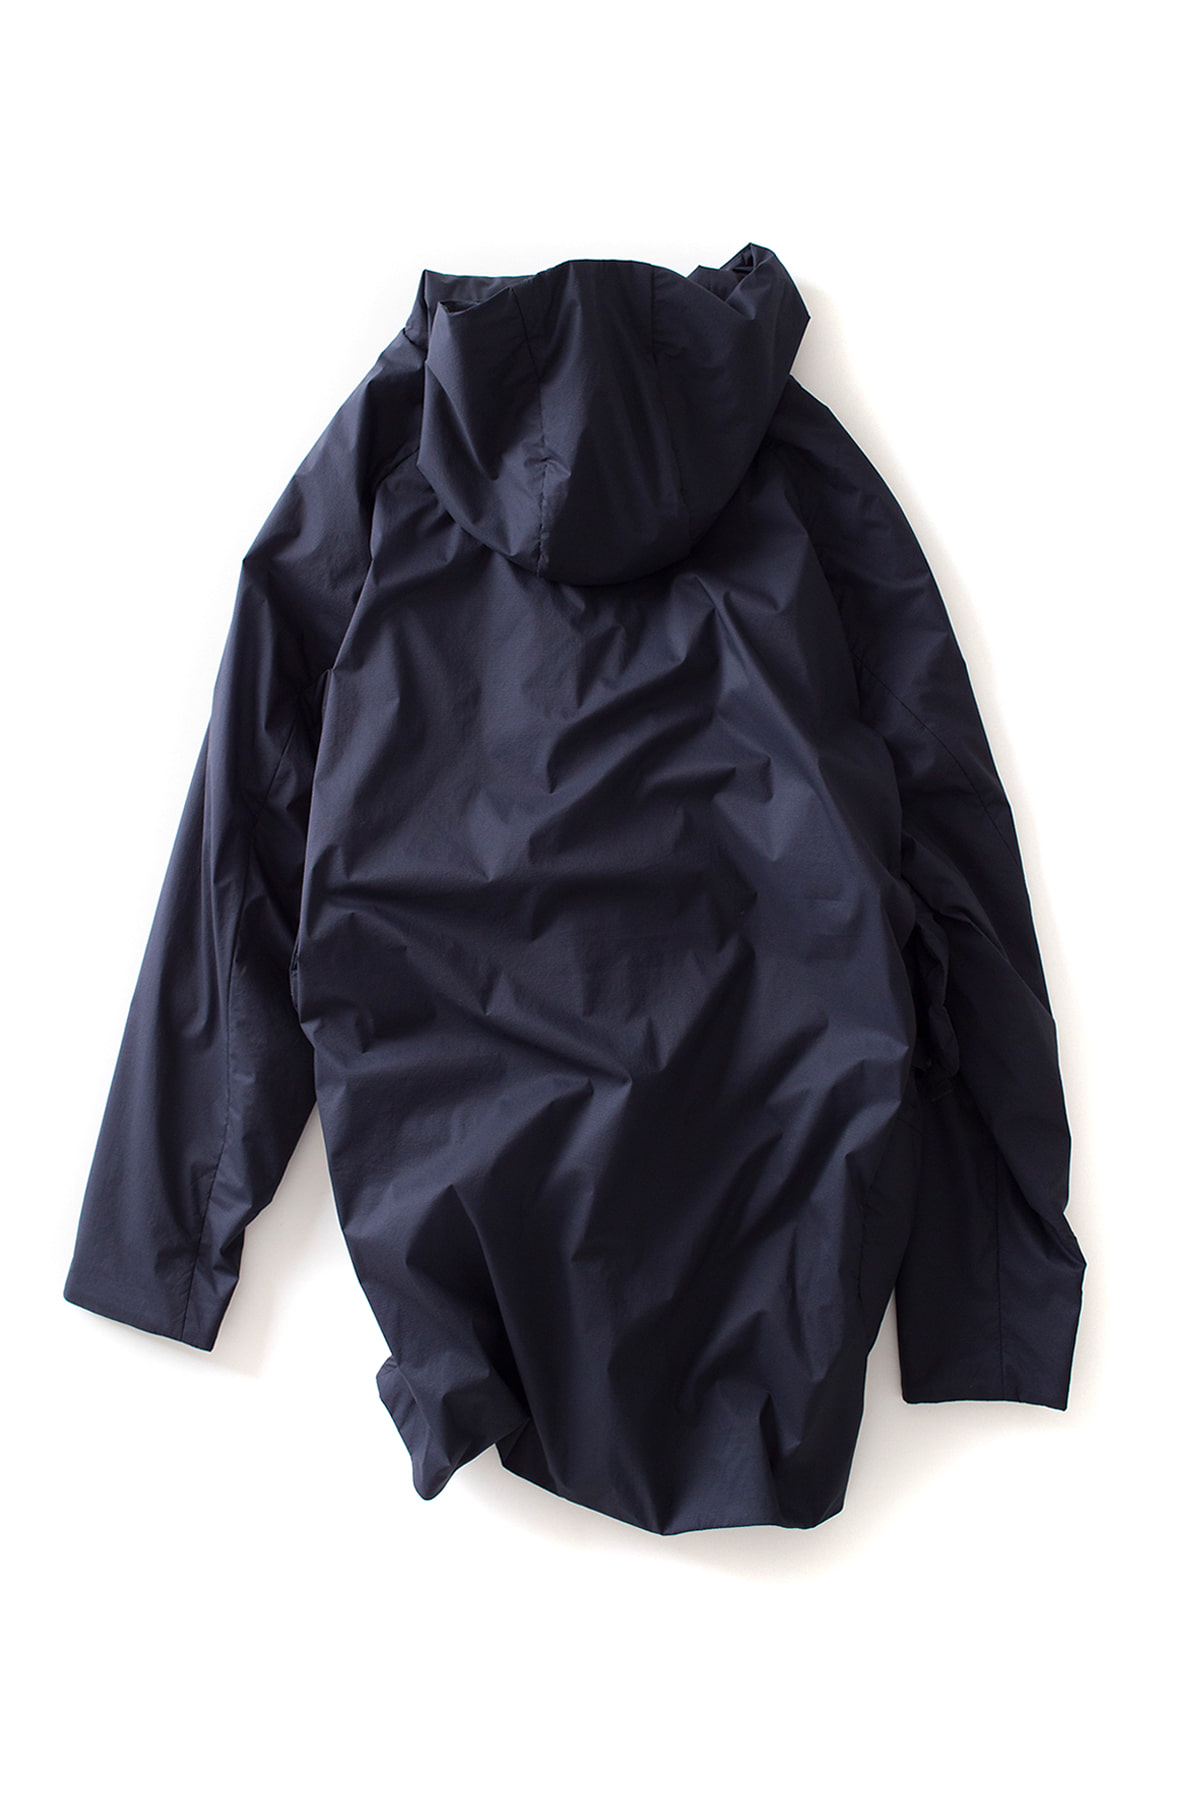 alk phenix : Zak Coat/ Hyper Stretch Light X α (Navy)